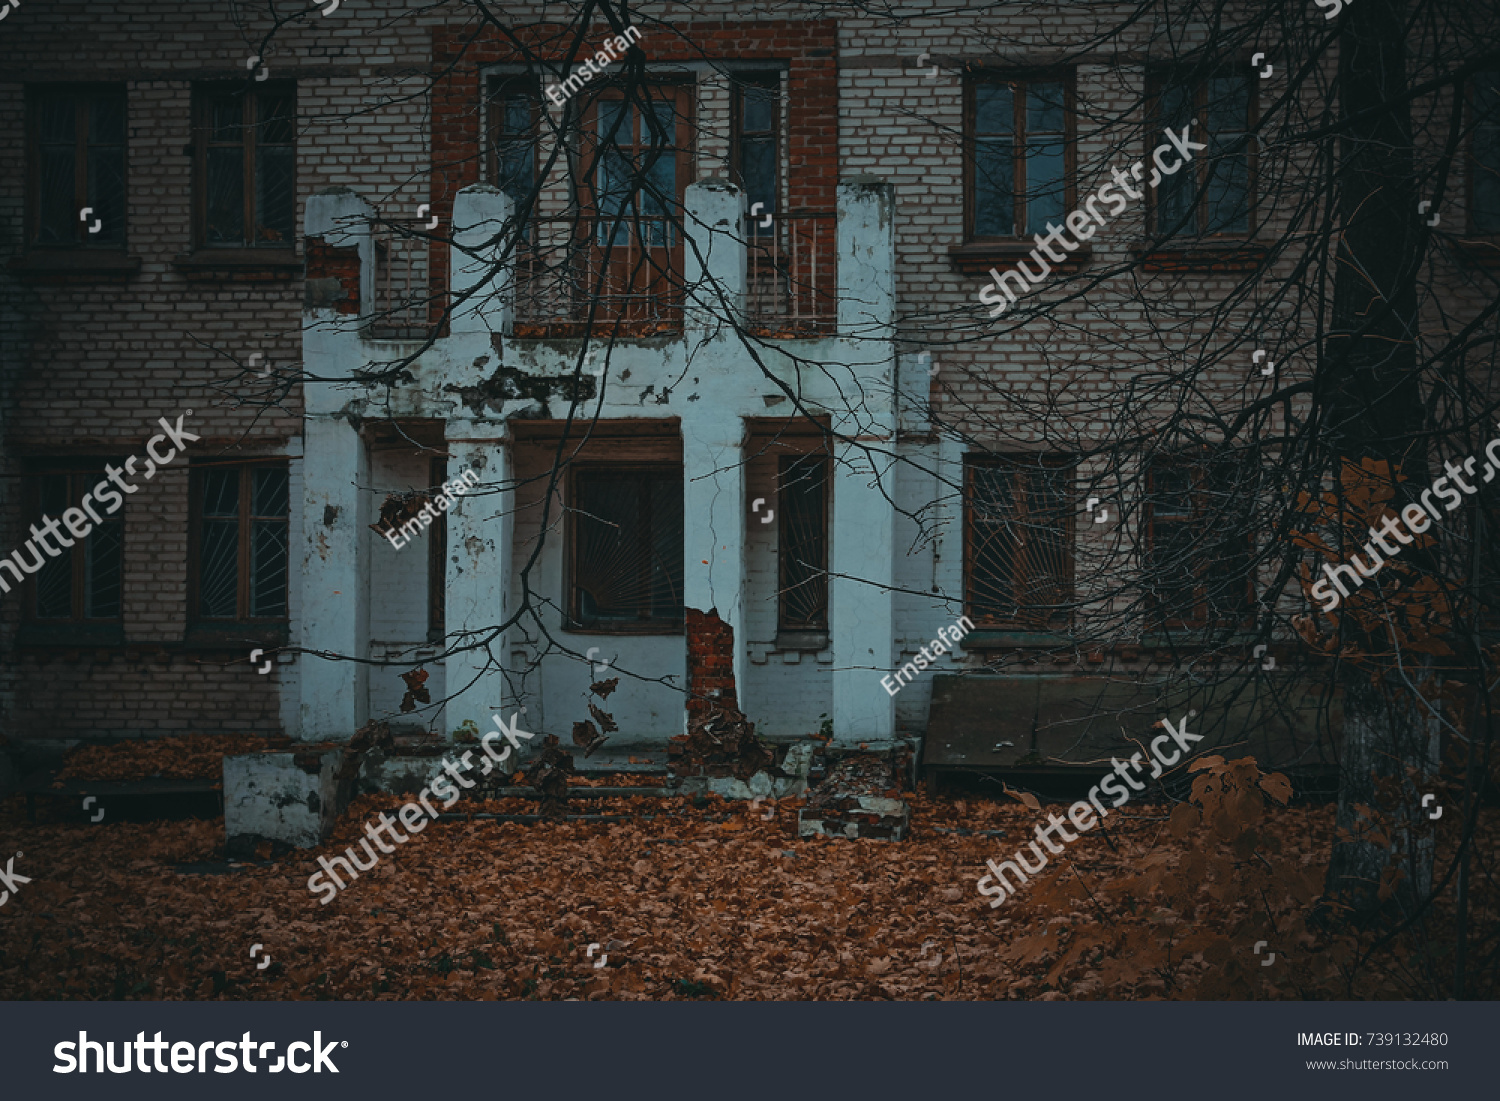 Leaf house frightening pictures